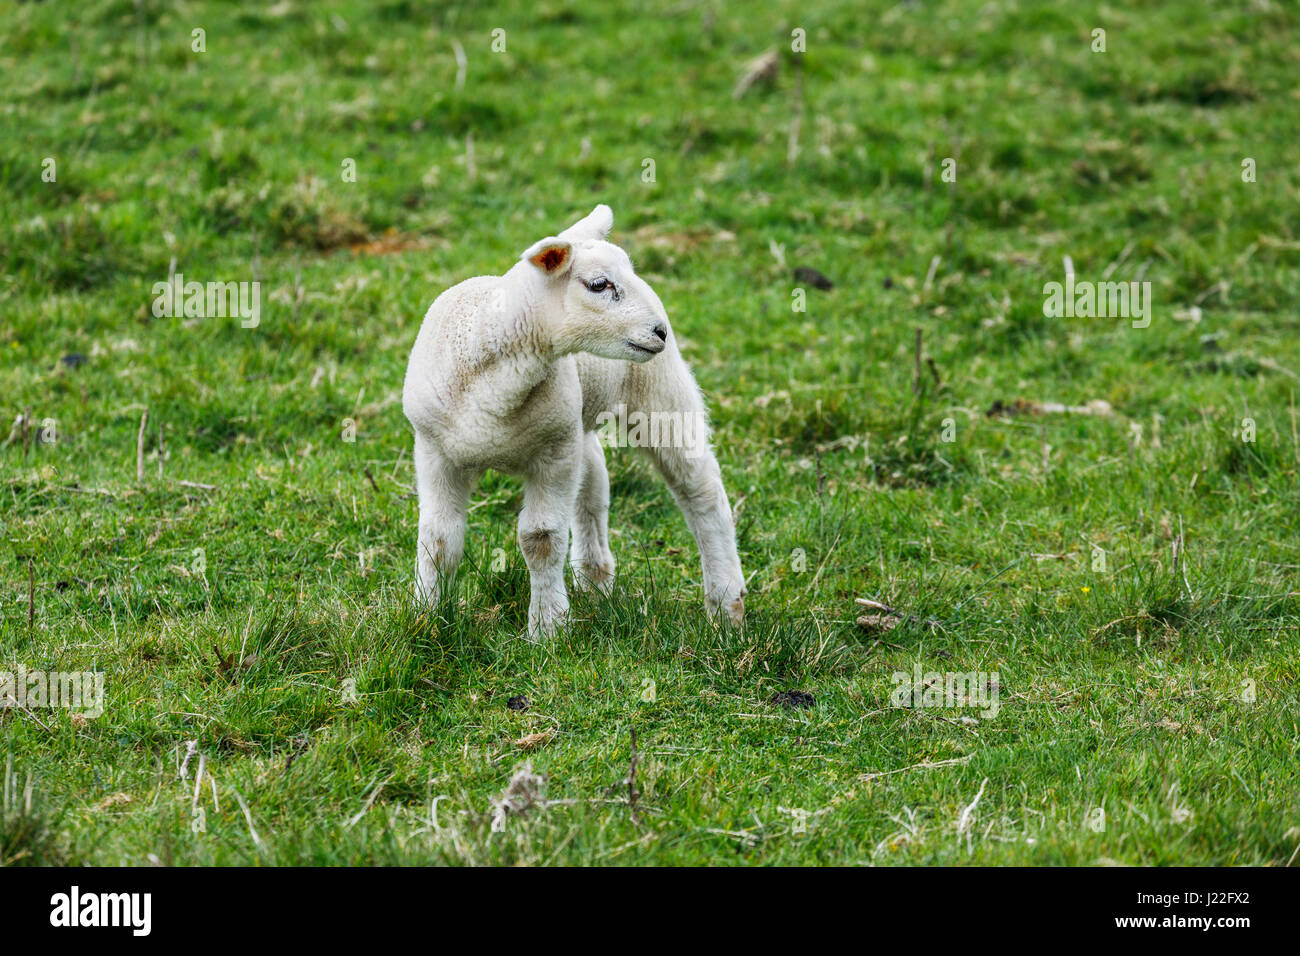 Livestock farming industry in the UK, lambing season: cute white spring lamb standing in a field in rural Gloucestershire, south-west England Stock Photo